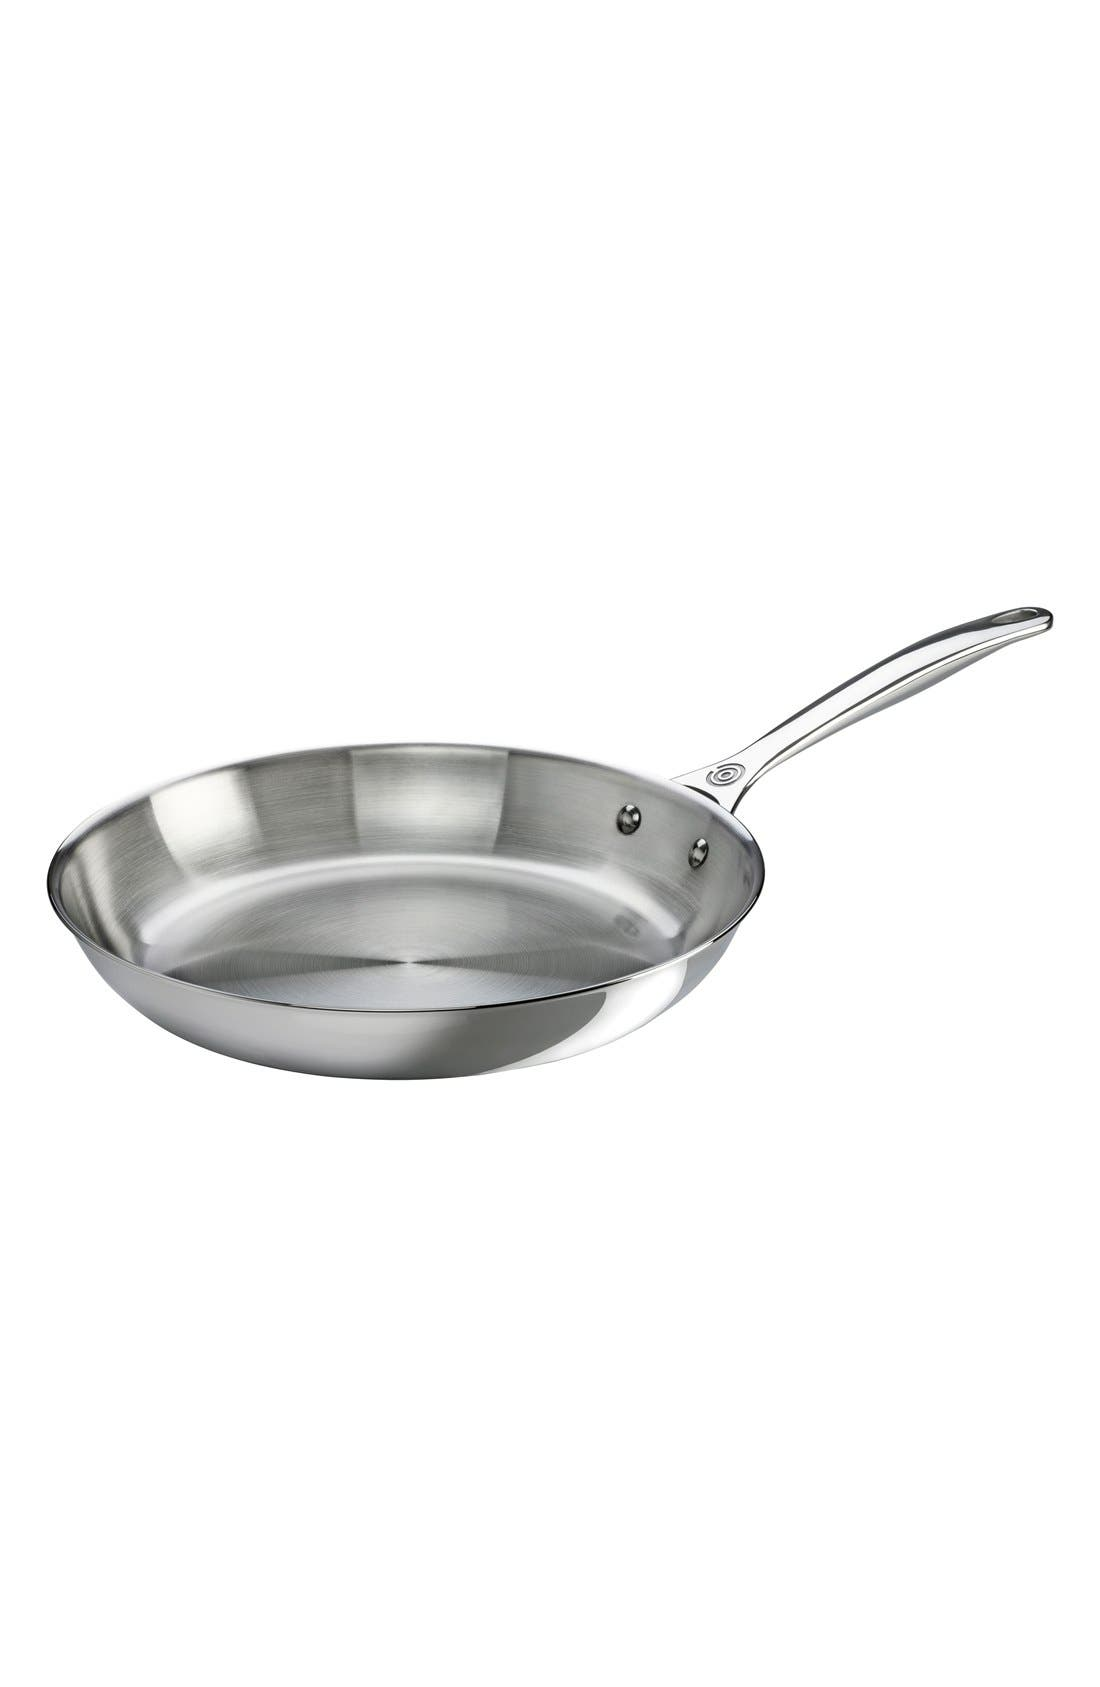 12 Inch Stainless Steel Fry Pan,                         Main,                         color, 040